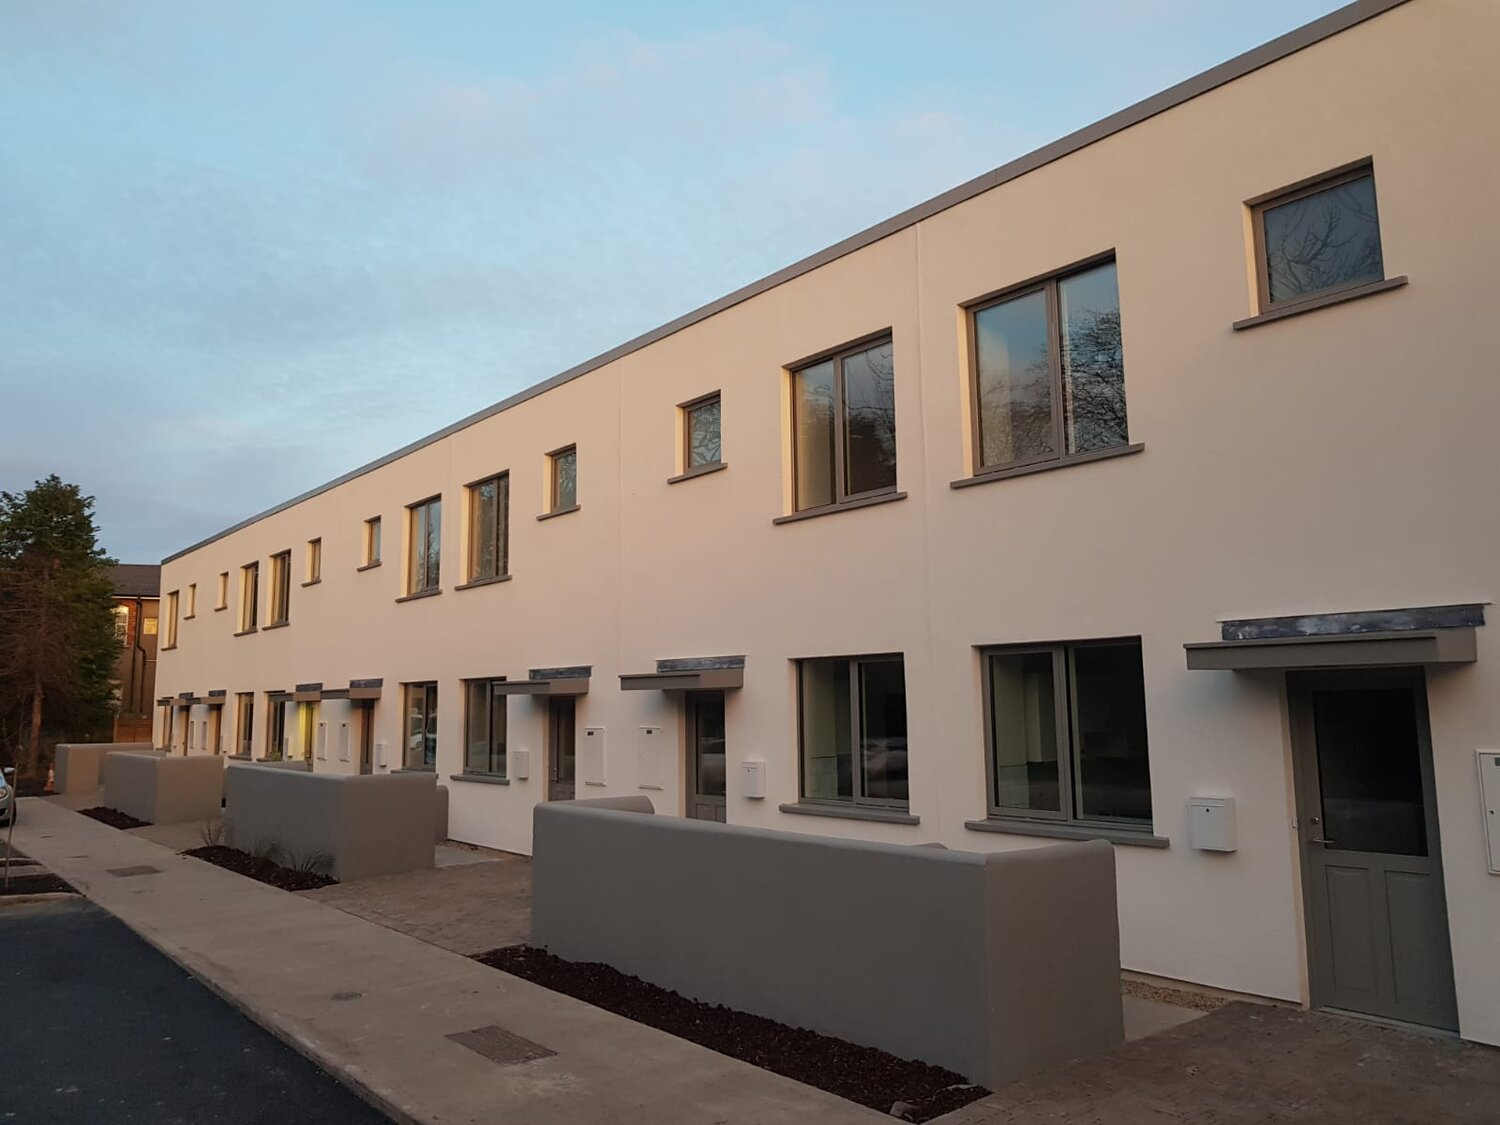 Moyola Court, a formerly private housing development that is now in public ownership and providing twelve families with secure, affordable homes.